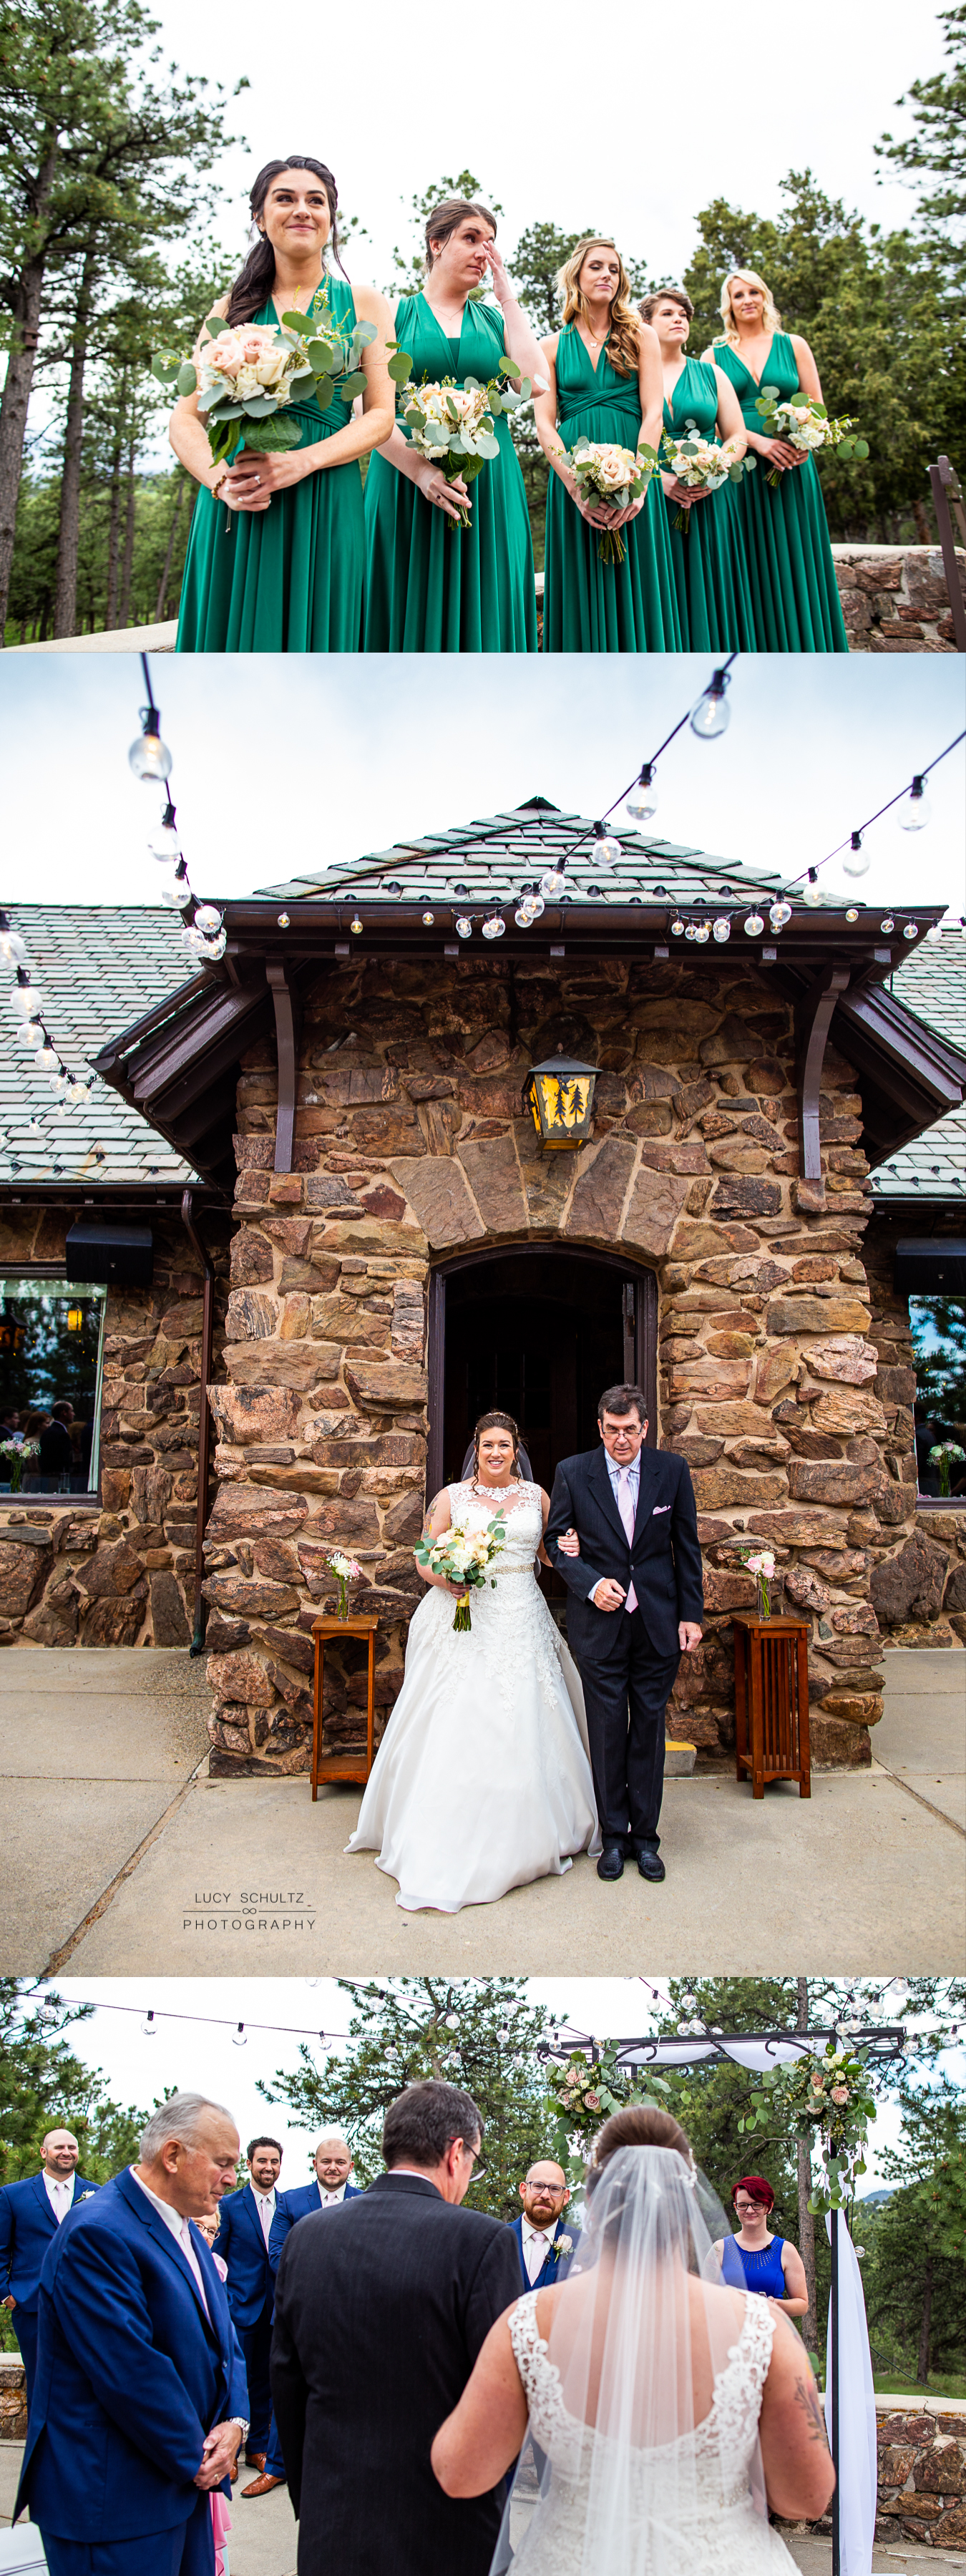 10OutdoorWeddingCeremonyGoldenCOVenues